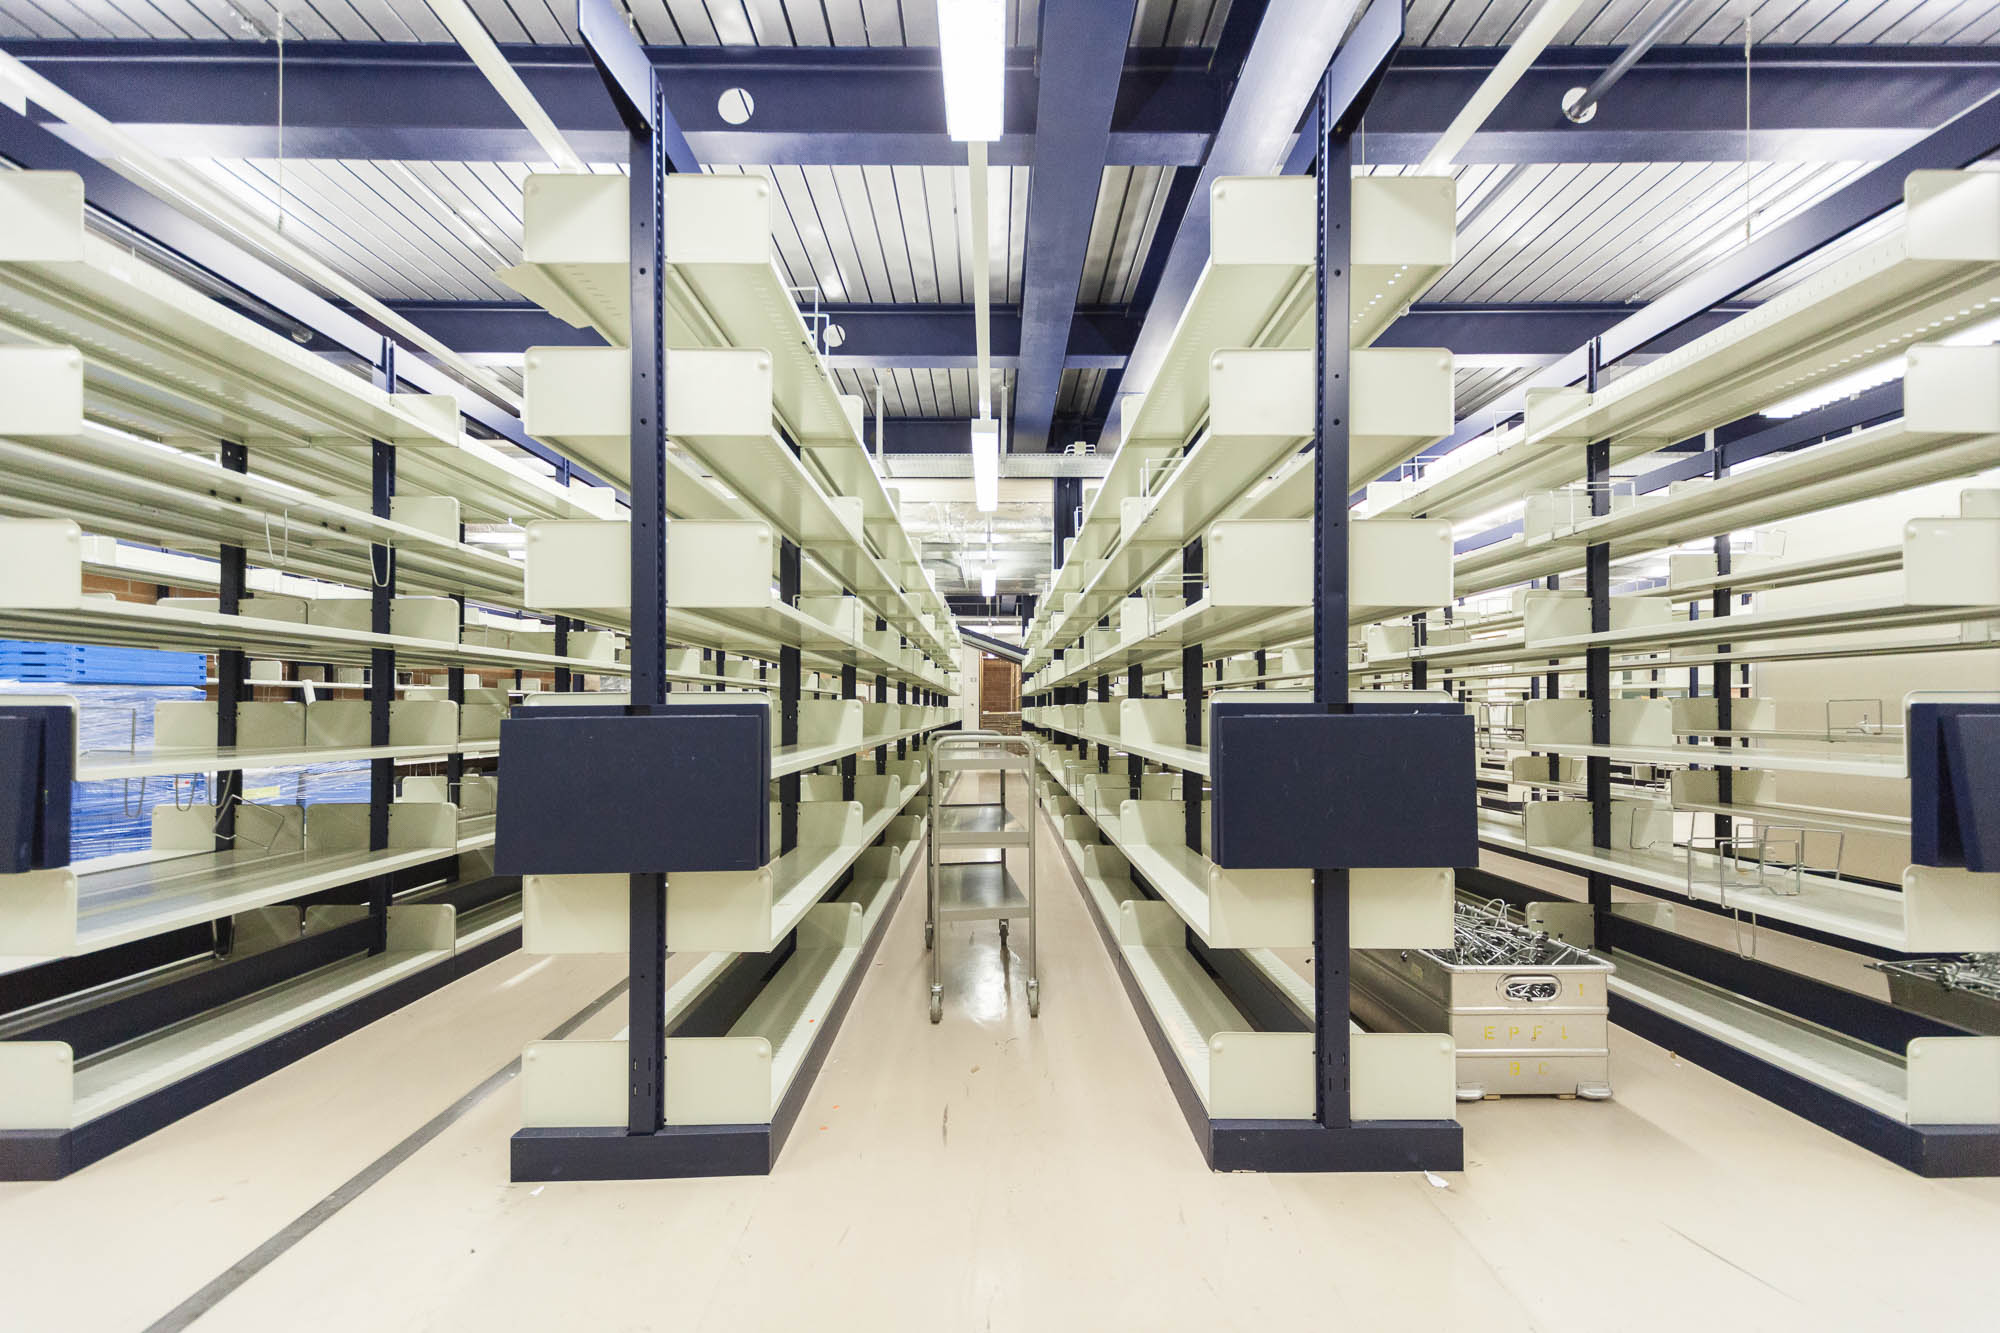 Image of empty library shelves at the EPFL library.